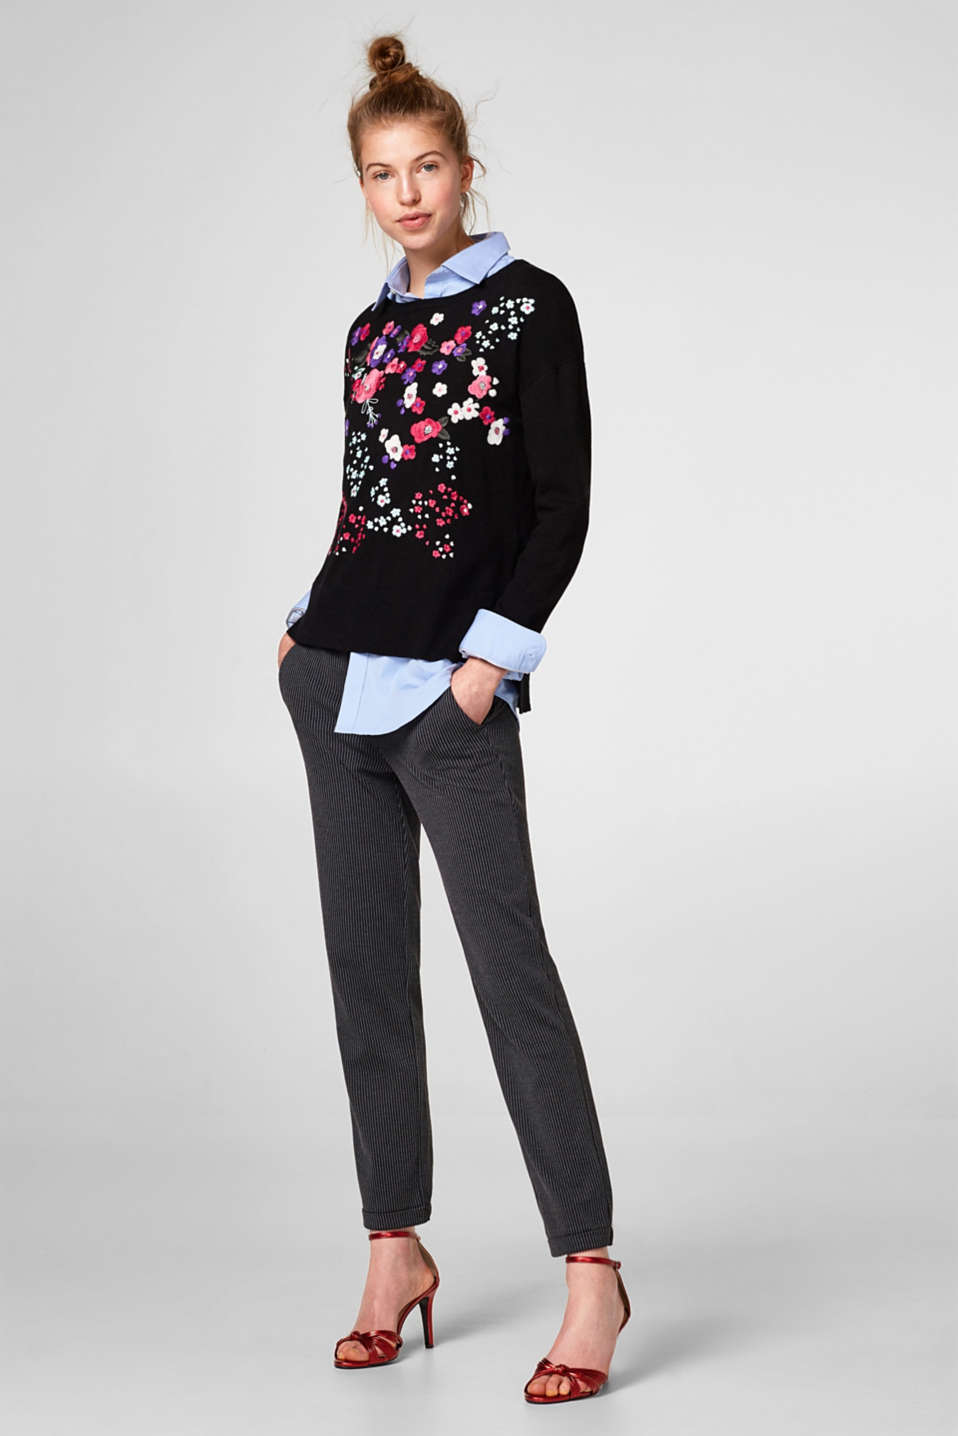 Soft jumper with colourful floral embroidery